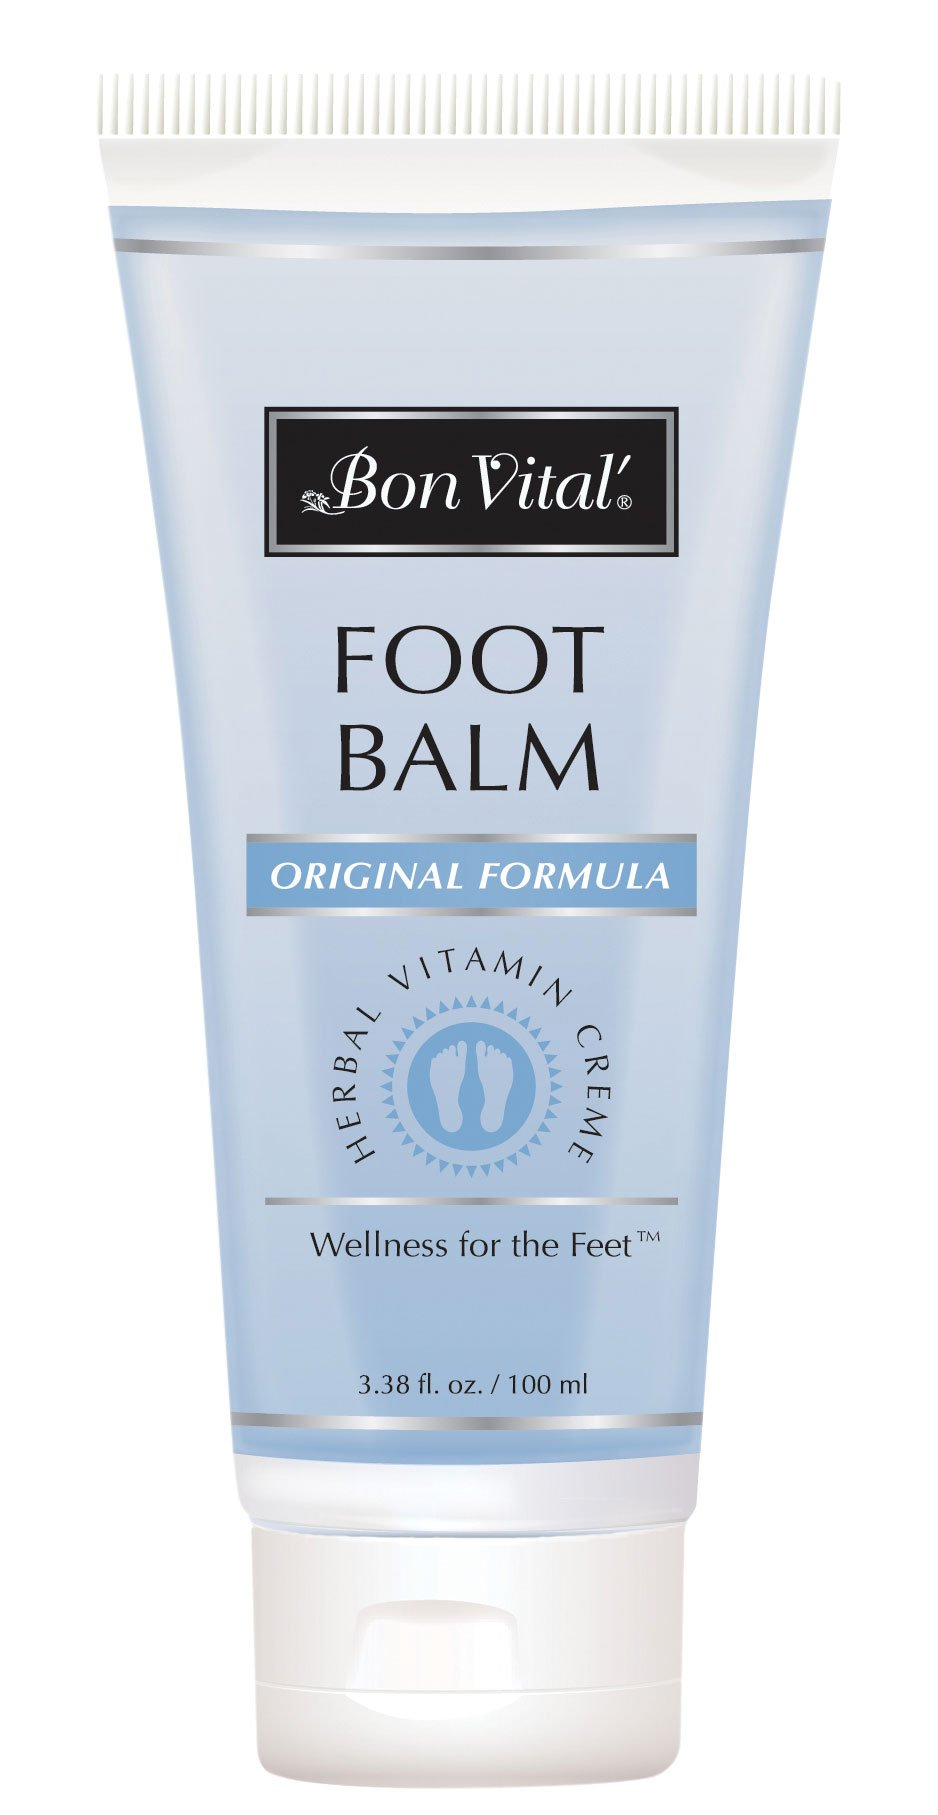 Bon Vital' Original Foot Balm, Foot Cream for Dry Skin & Cracked Heels, Moisturize Feet & Speed Healing of Blisters & Abrasions on Heel, Increase Circulation in Feet, 3.38 Ounce Tube